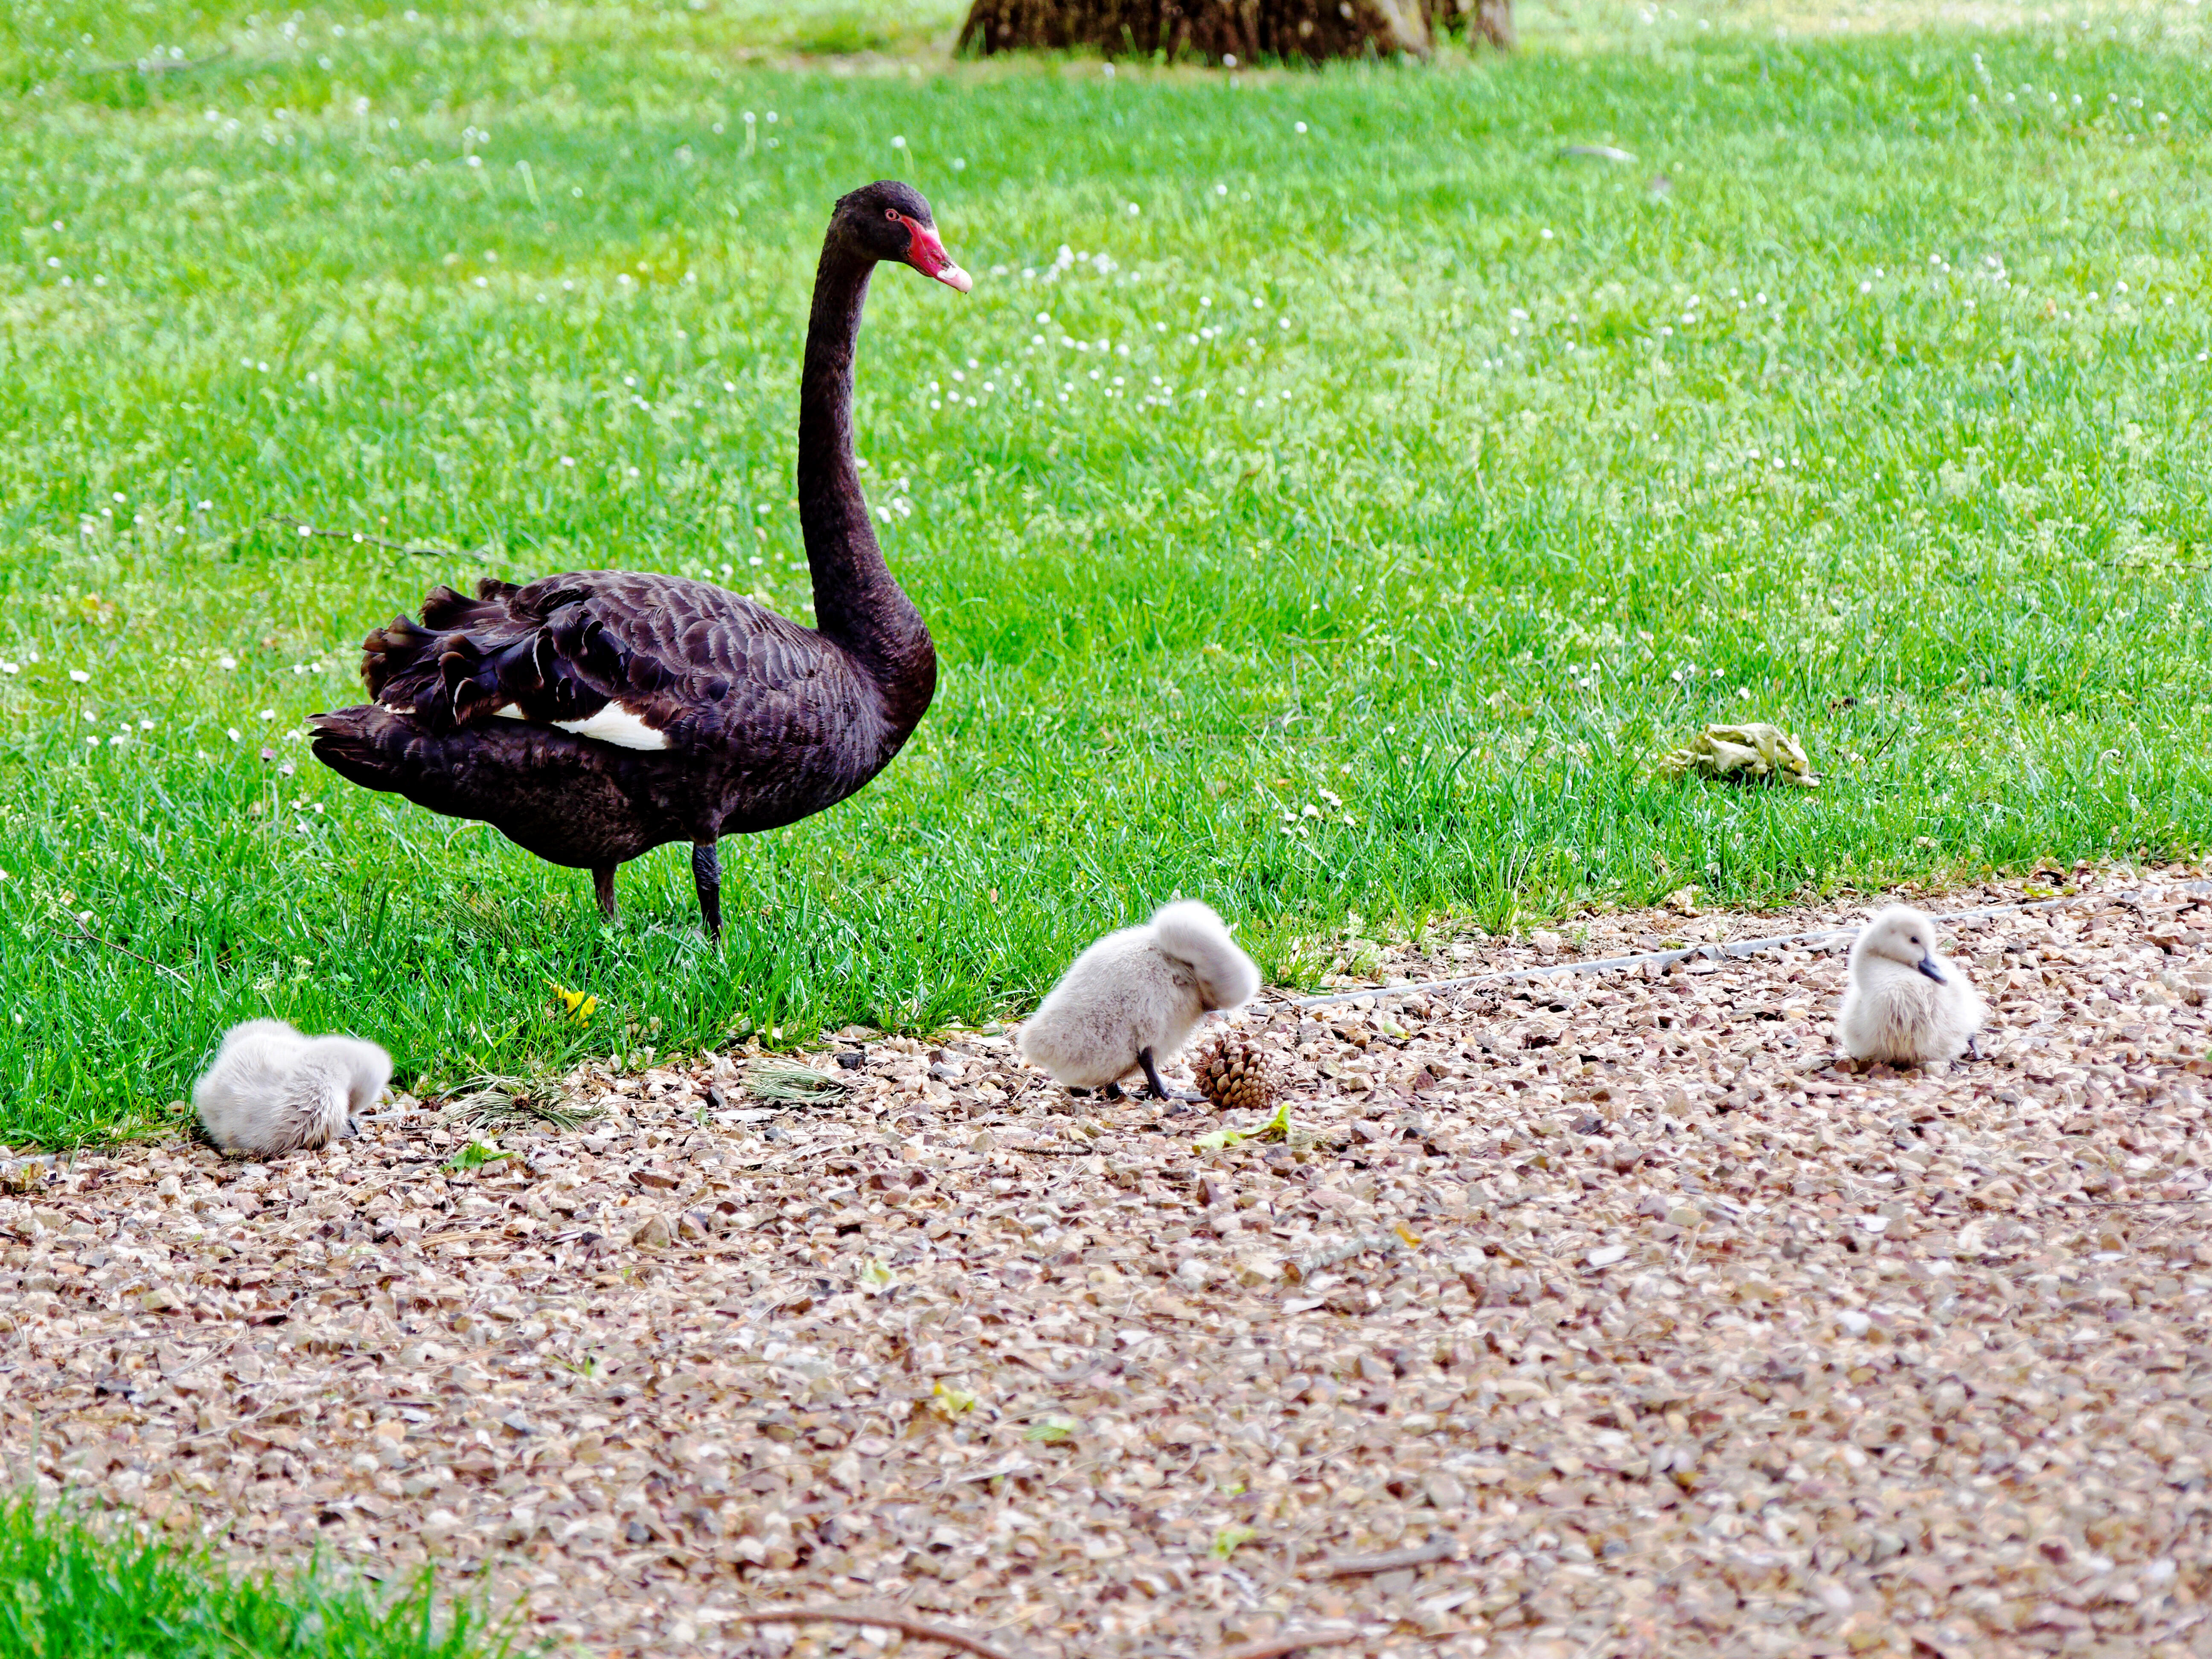 This should be Swans-cygnets-2.jpeg.  Is it missing?